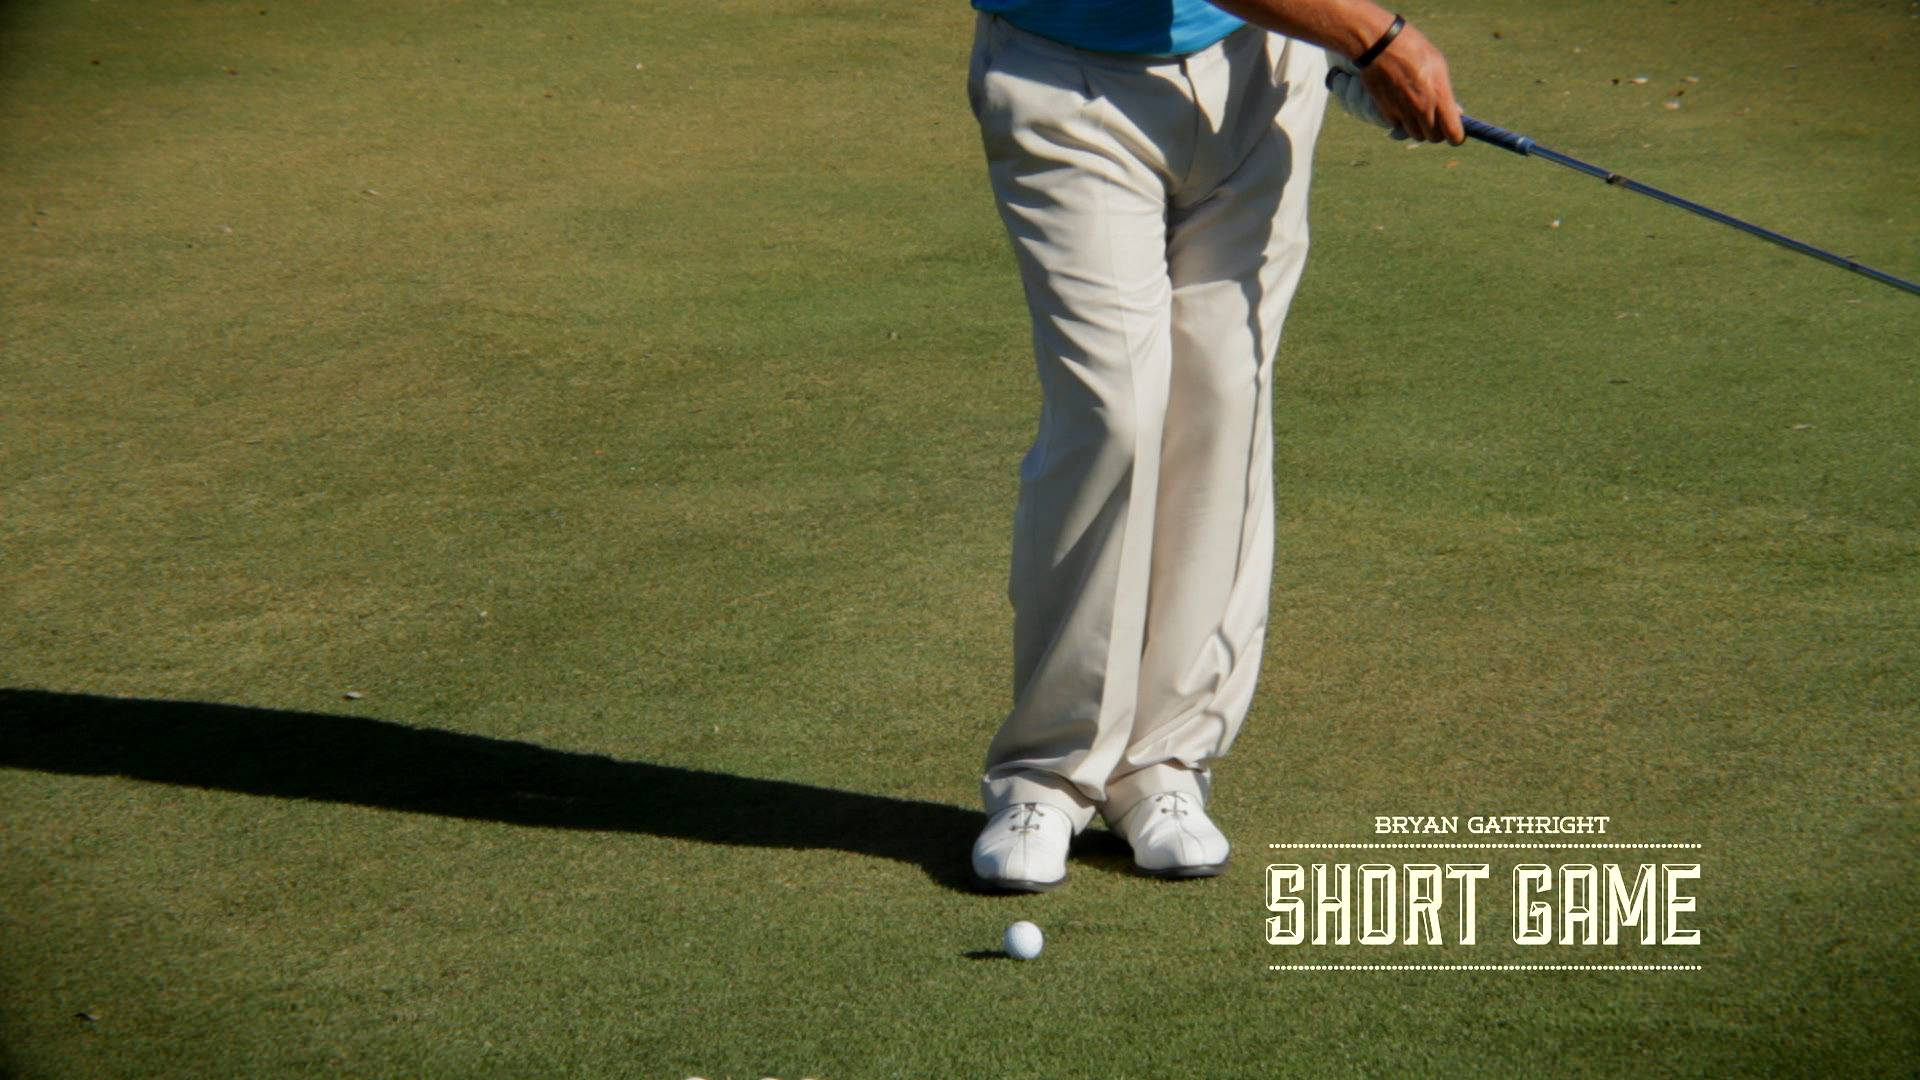 Control Spin of Short Game Shots